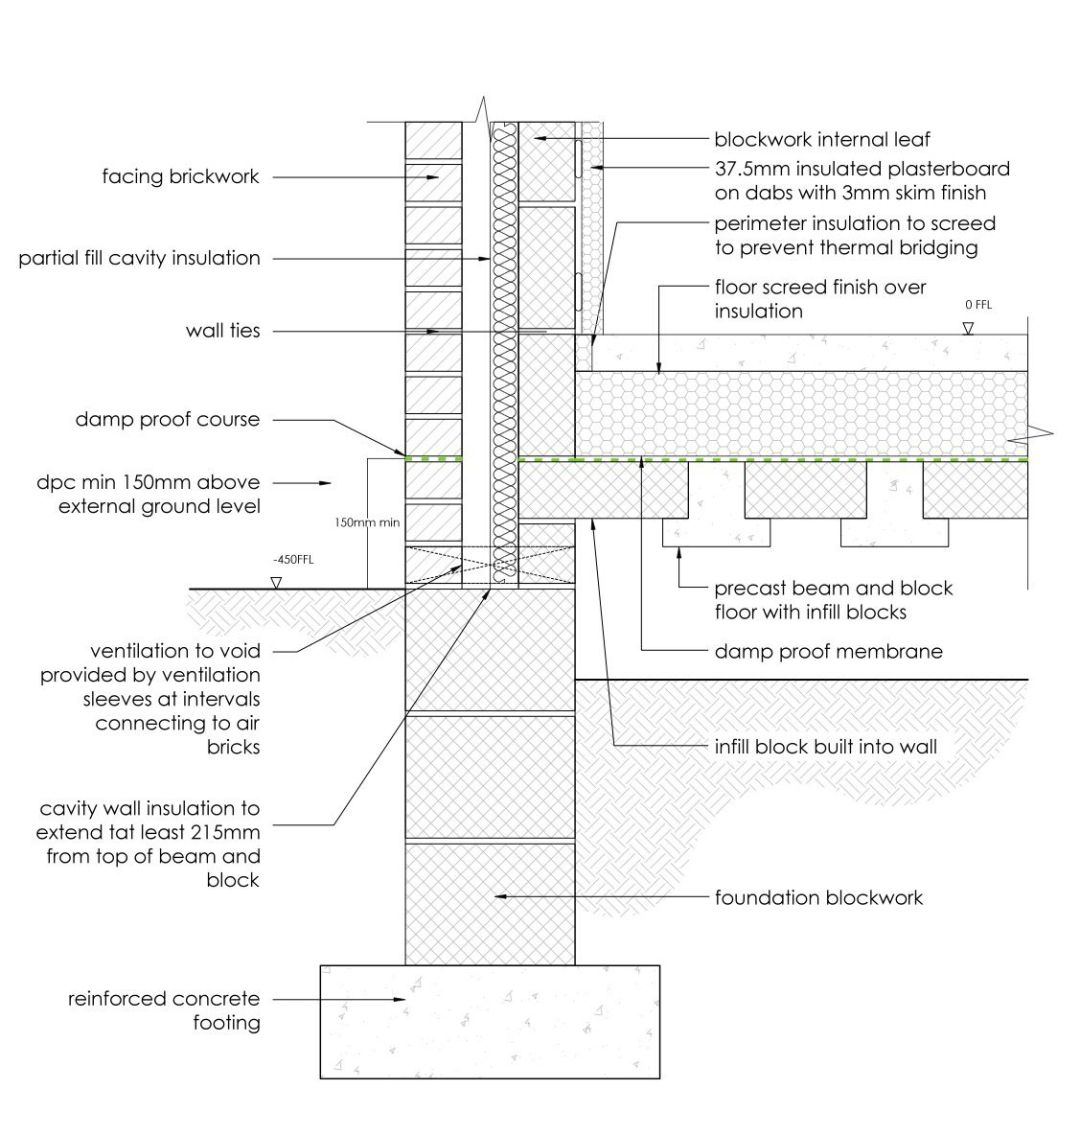 medium resolution of the inherent mass and damping qualities of concrete give beam and block flooring construction a good noise reduction additional sound insulation can also